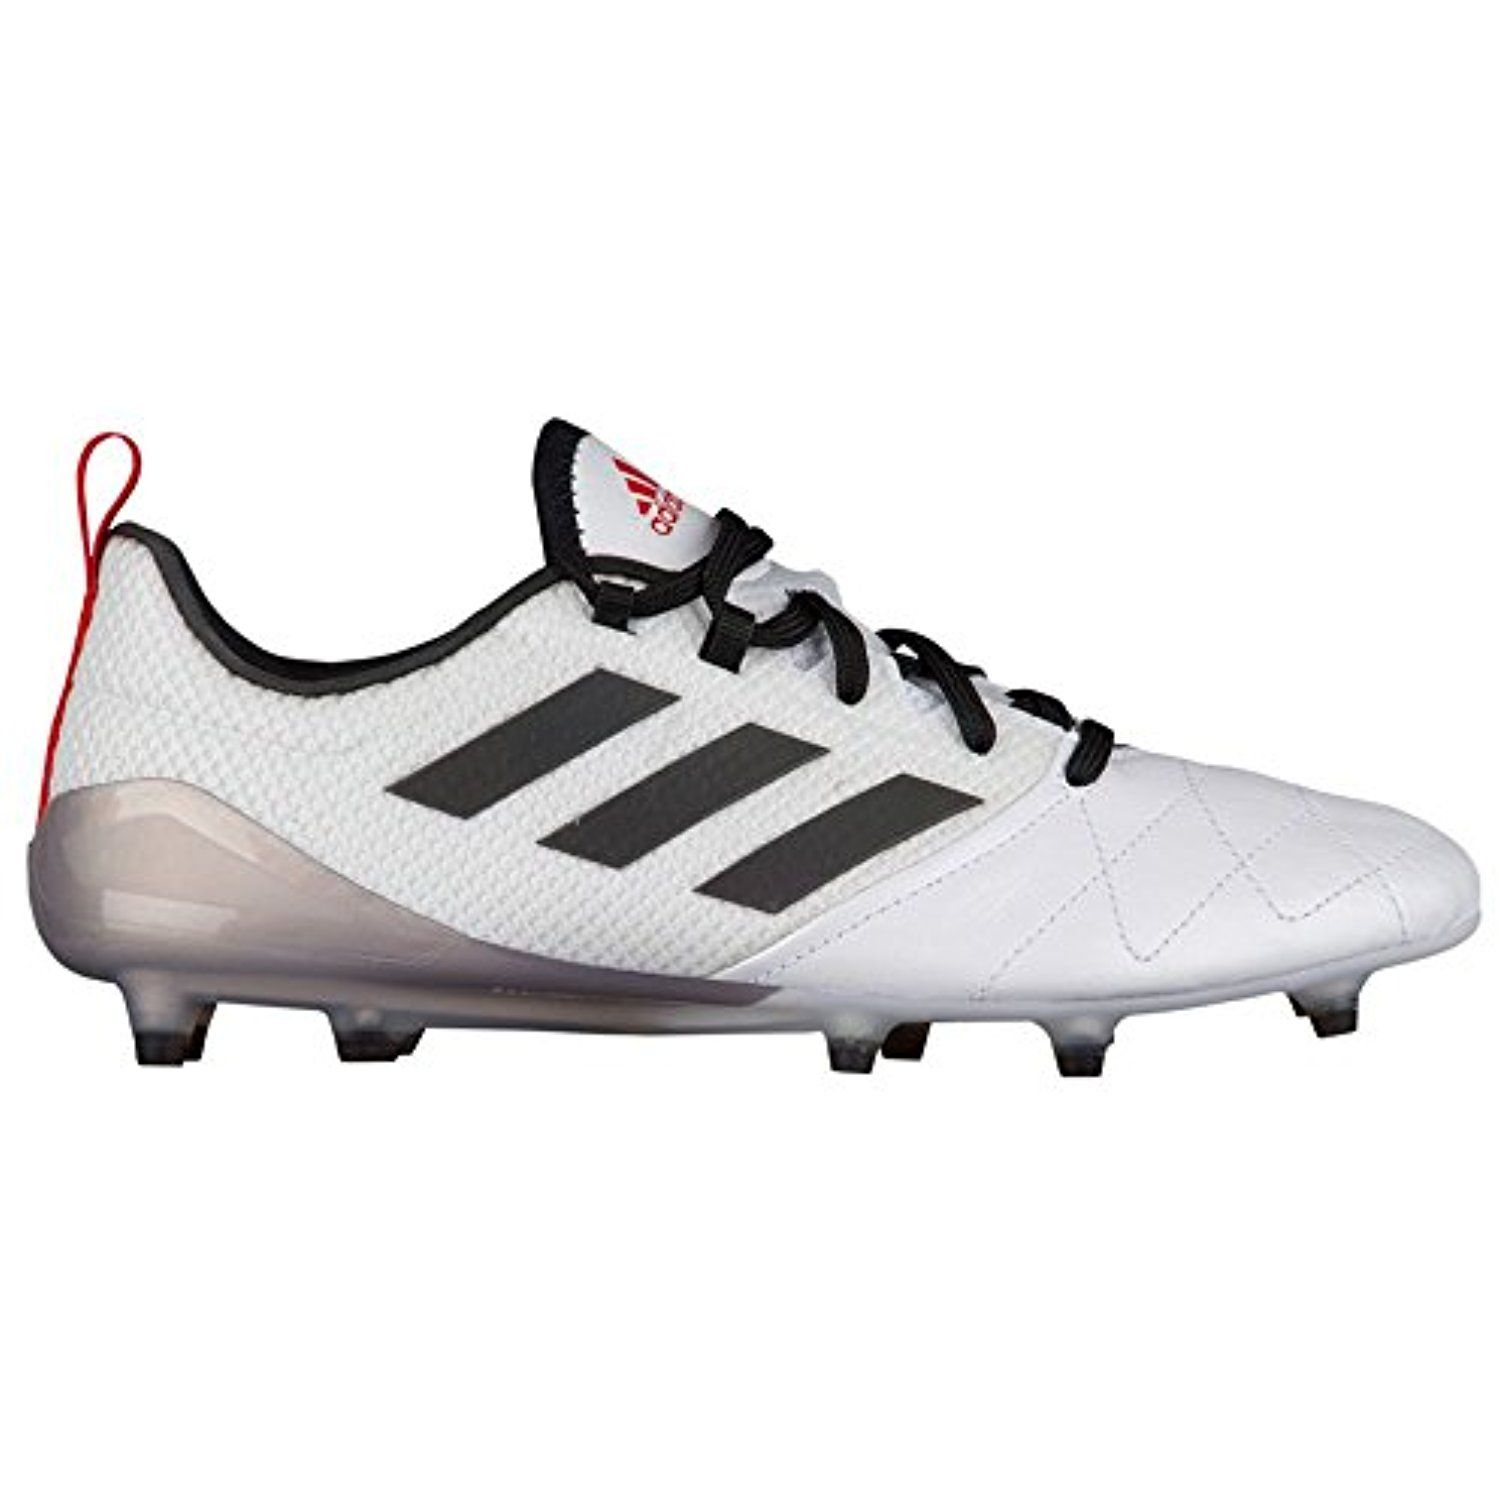 new product 68a42 83a16 Women's Soccer Ace 17.1 Firm Ground Cleats * Click image to ...